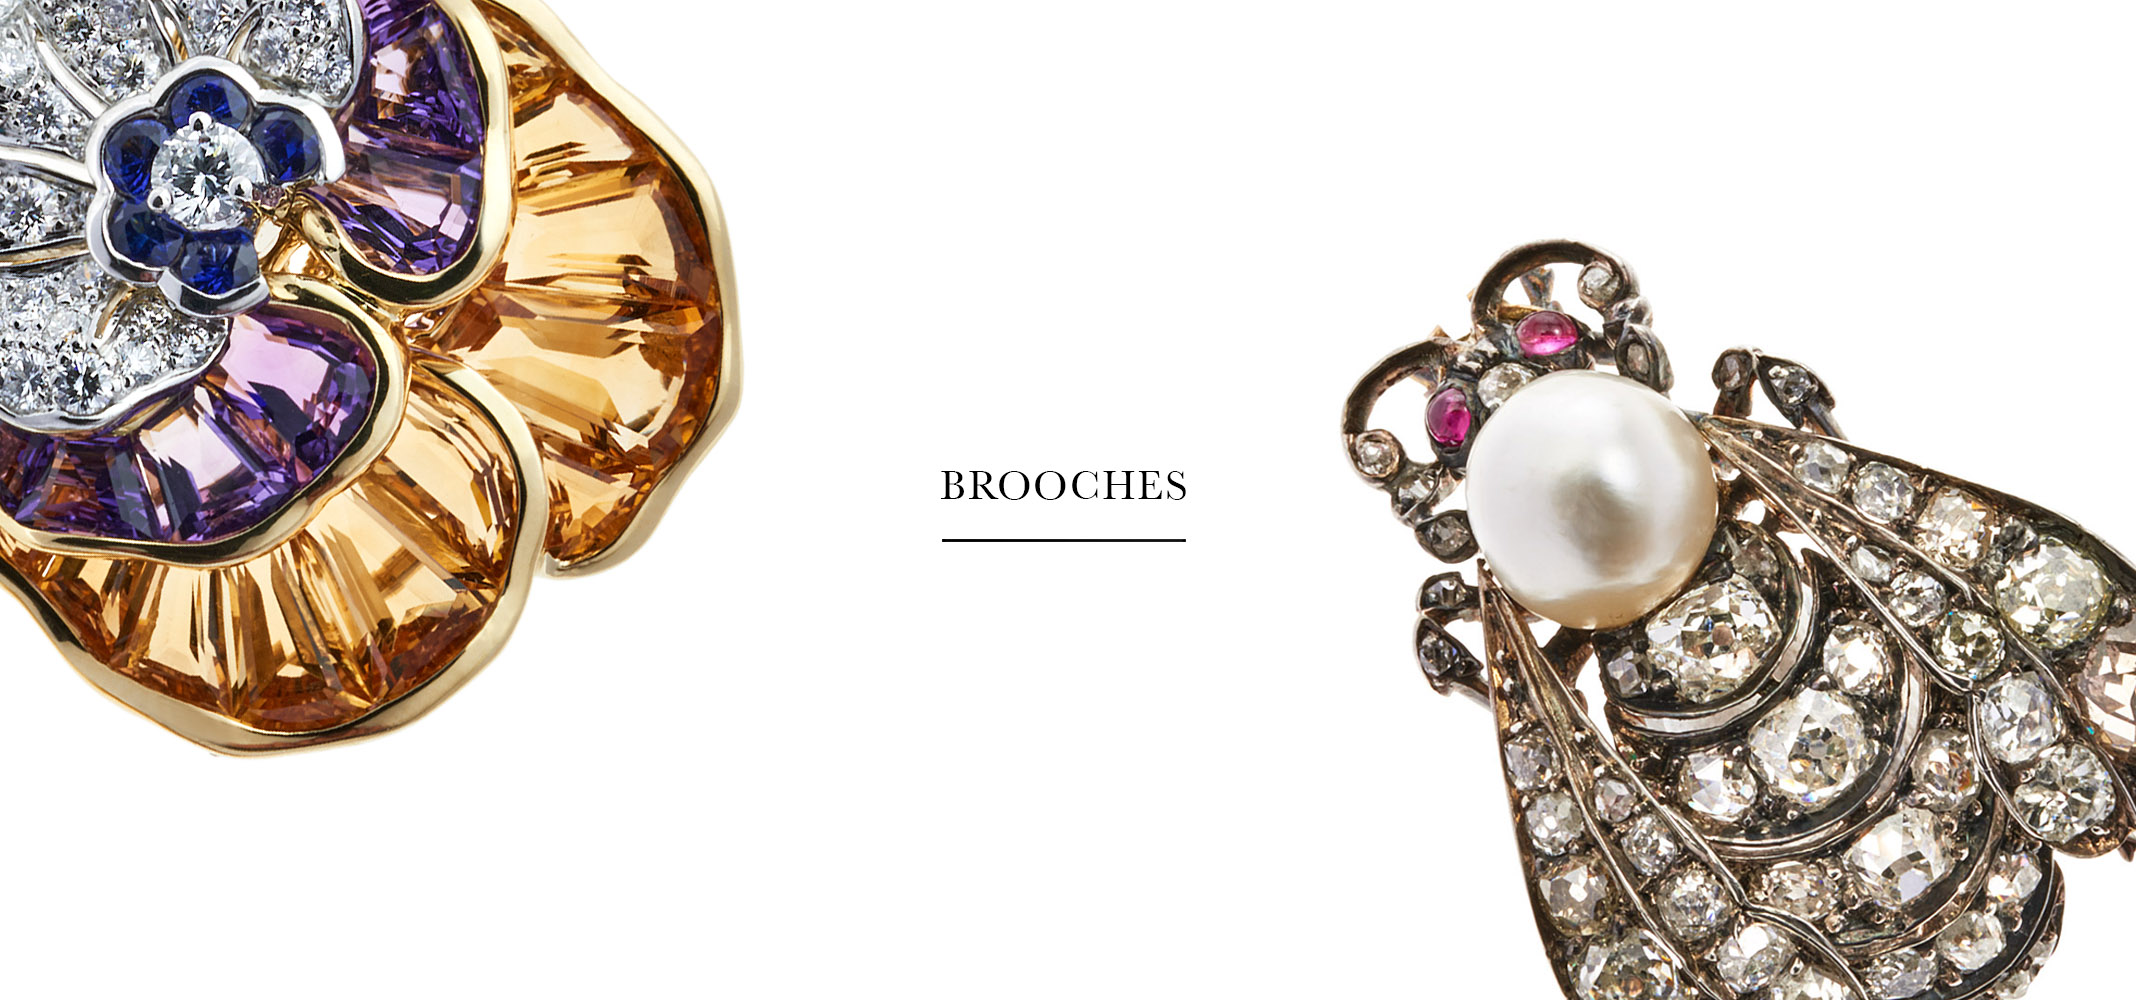 Brooches Banner 1.jpg